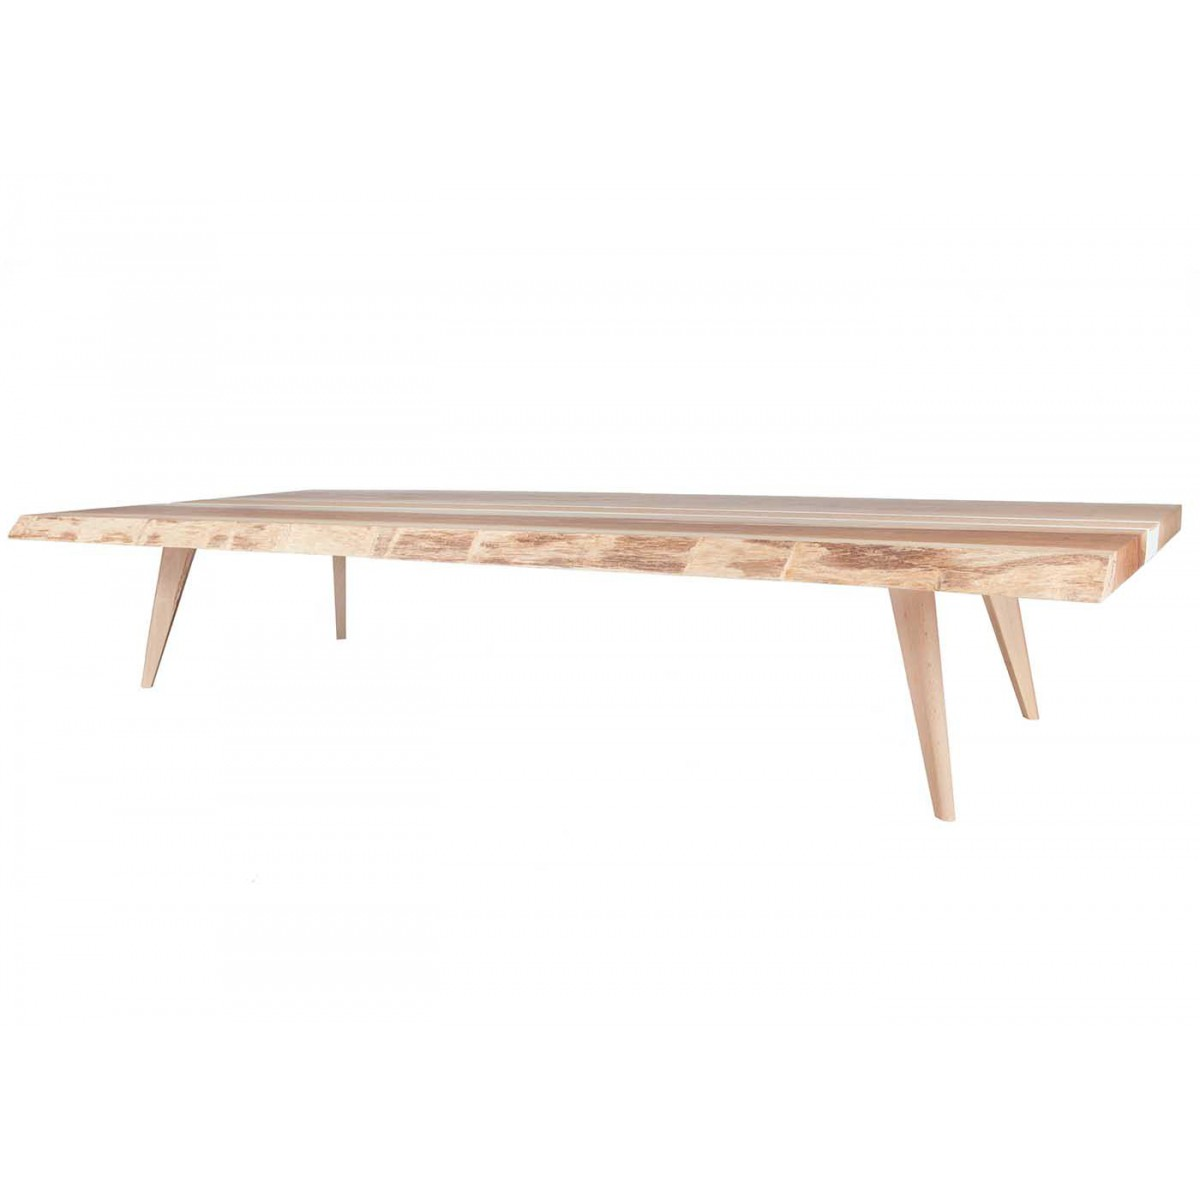 Table basse design scandinave en ch ne massif tray blomkal for Table basse scandinave en chene